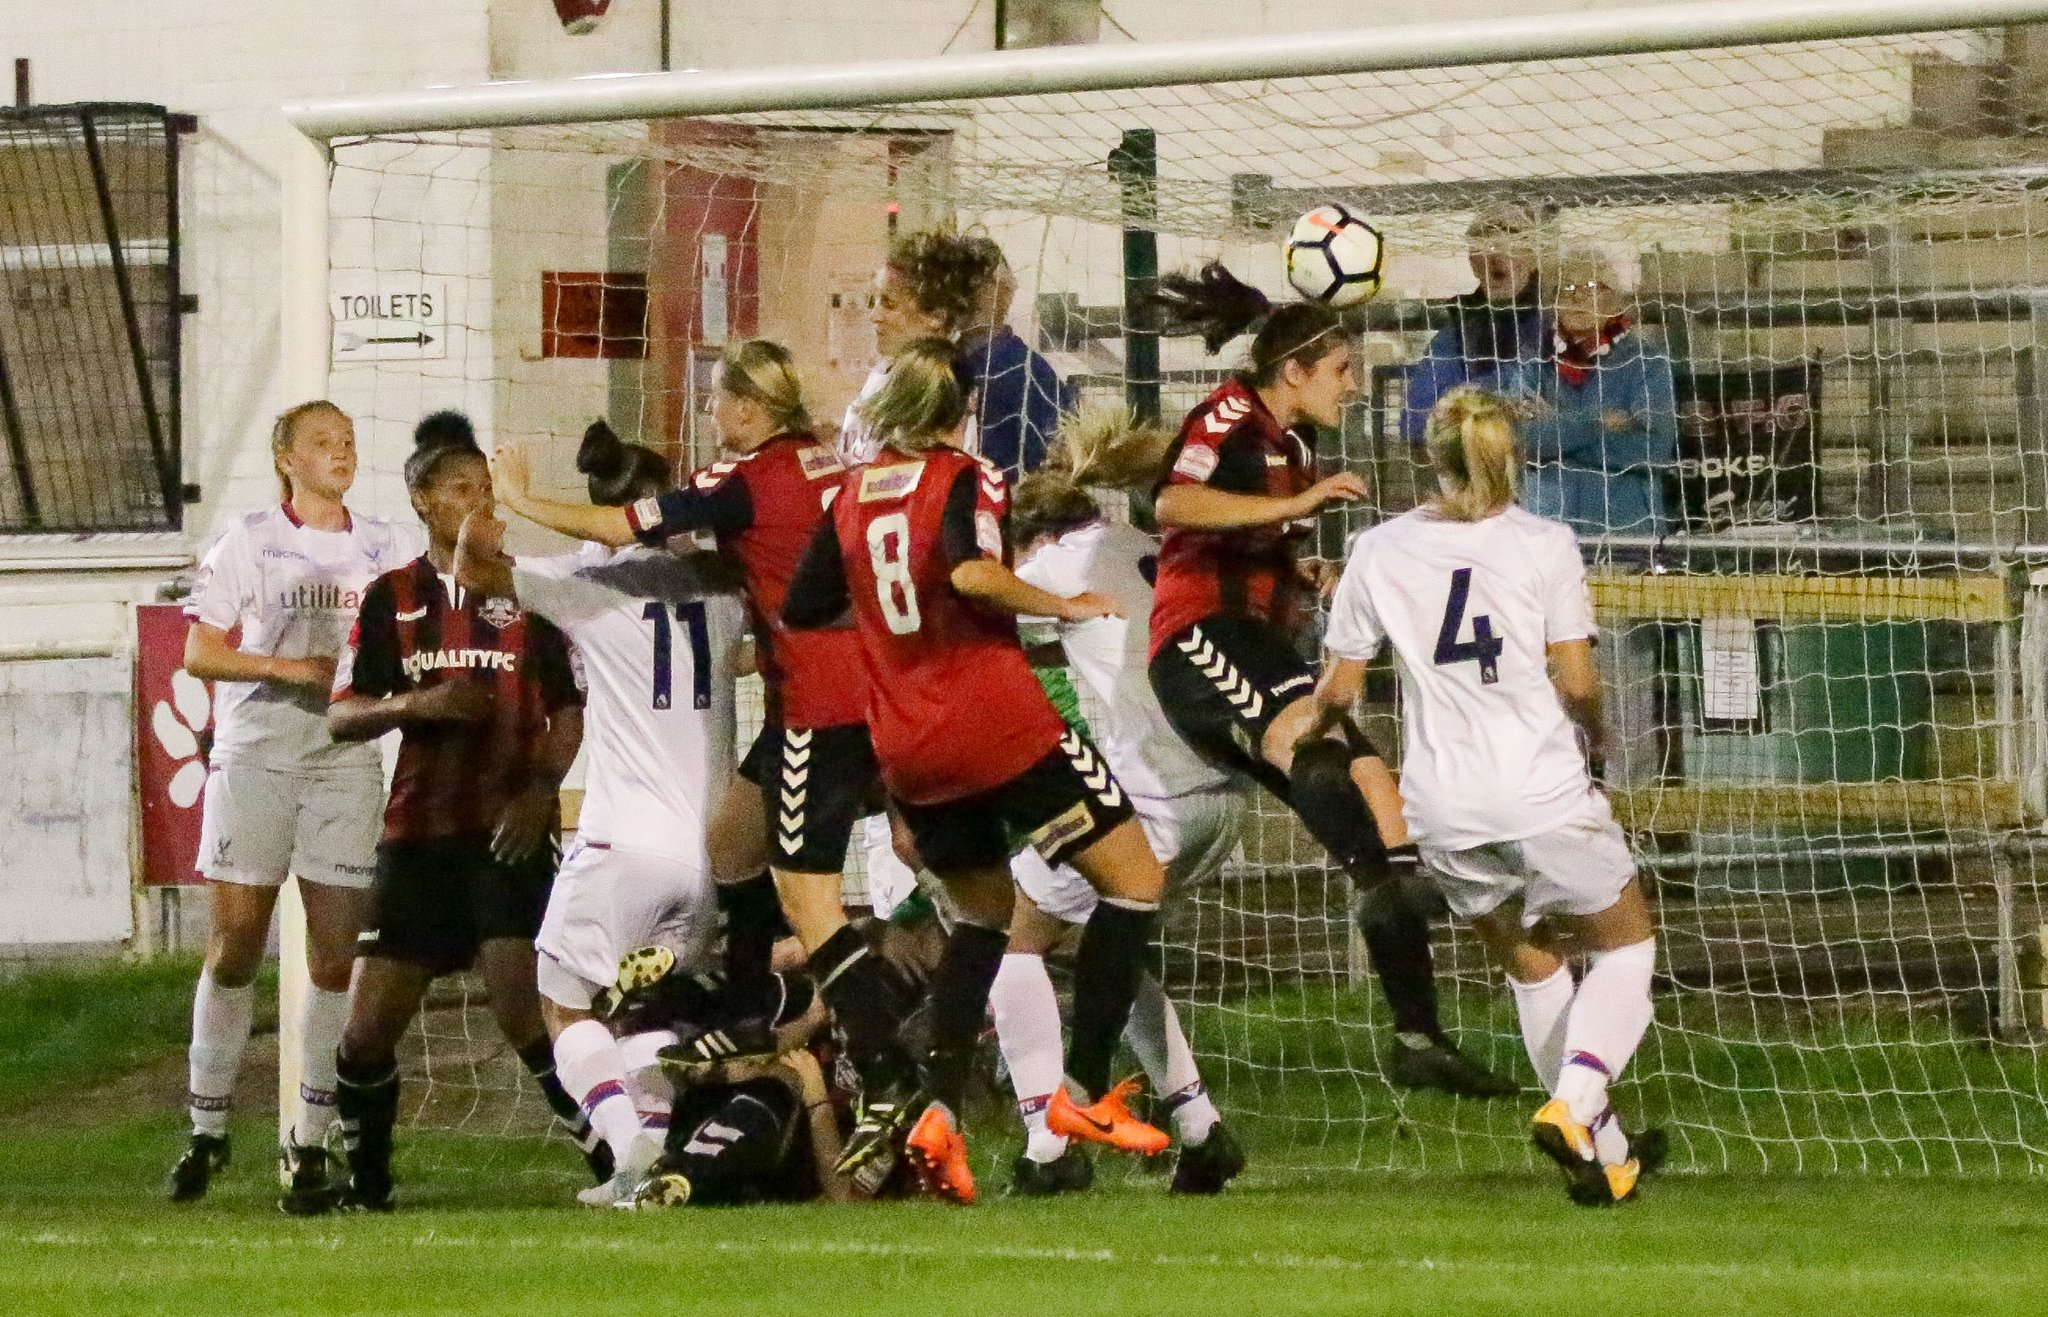 Danni Lane scores the winner for Lewes against Crystal Palace, Sep 20 2017 (Photo: James Boyes)